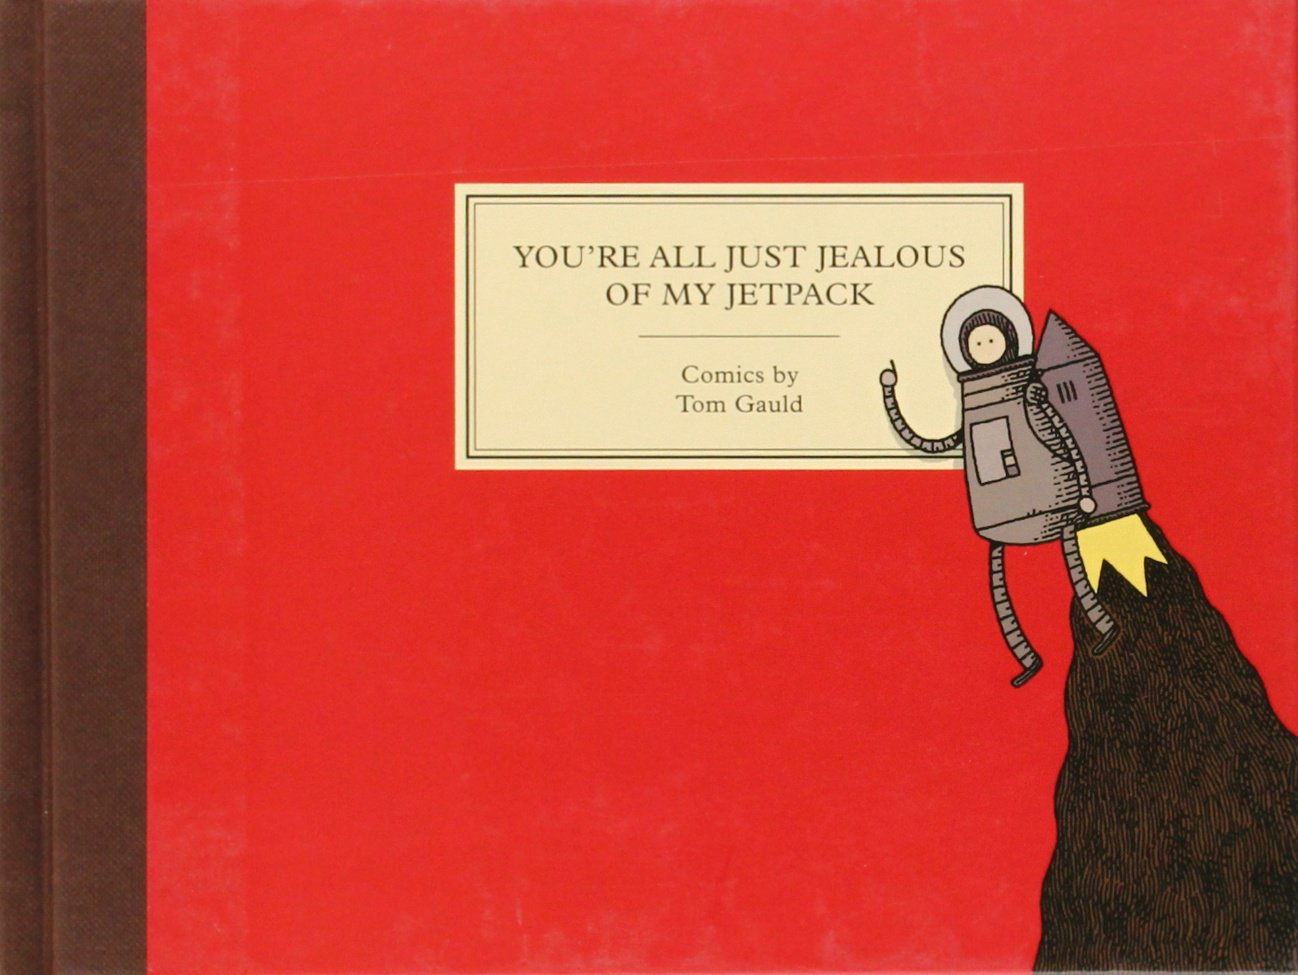 You're All Just Jealous of My Jetpack: Cartoons: Tom Gauld